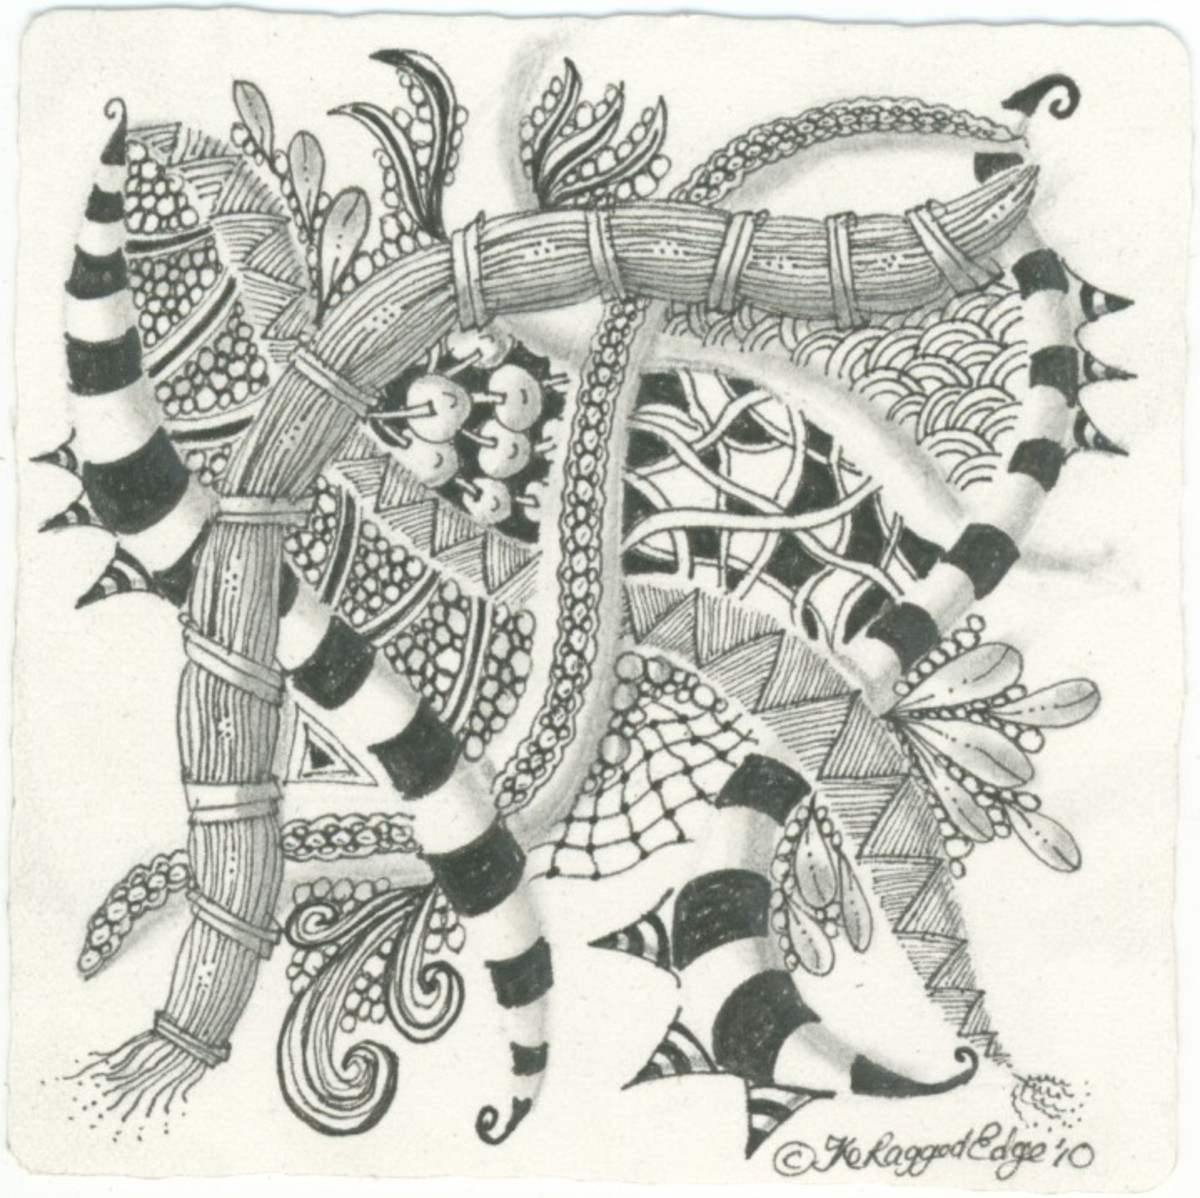 After you shade your Zentangle, don't forget to sign it.